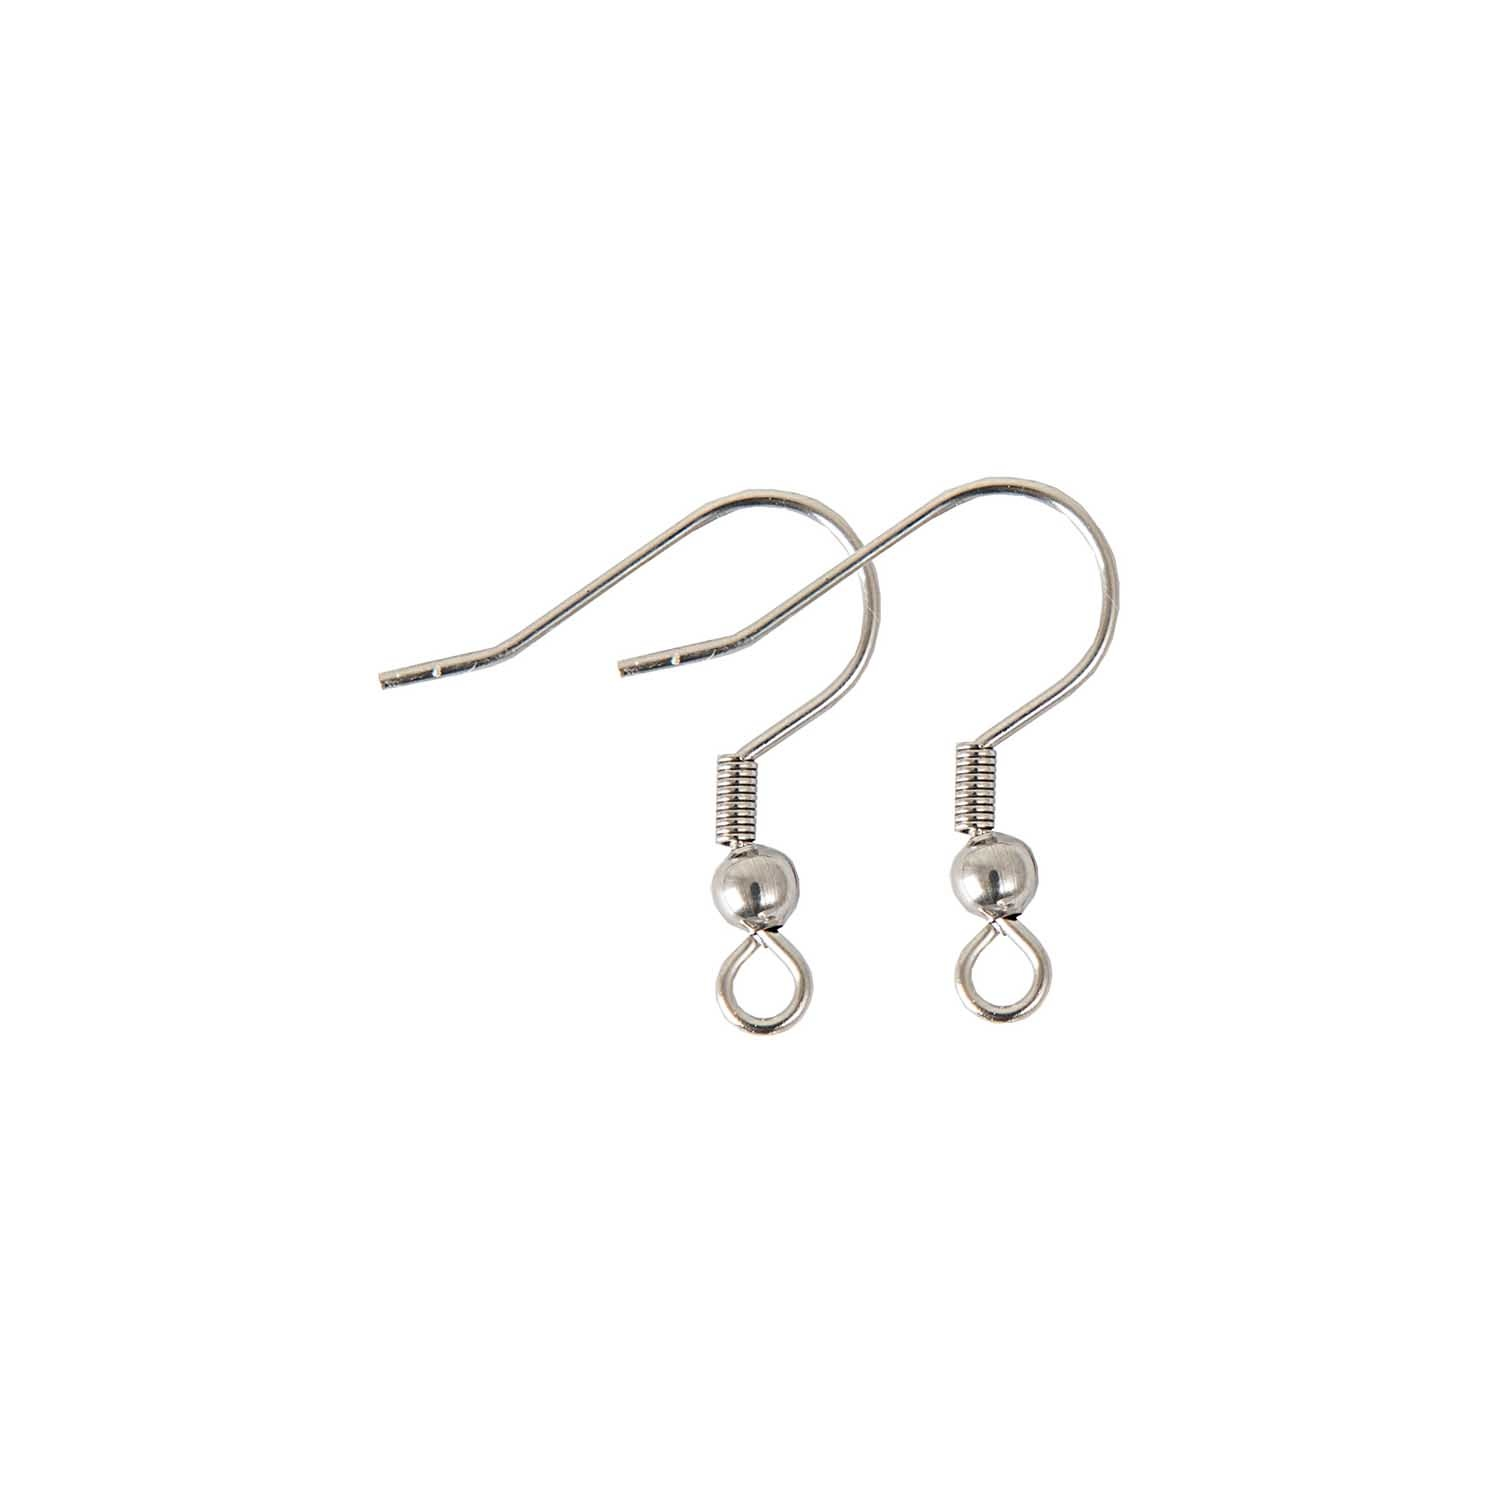 Rico NAY EARRING HOOK STAINLESS STEEL17MM, 2 PCS